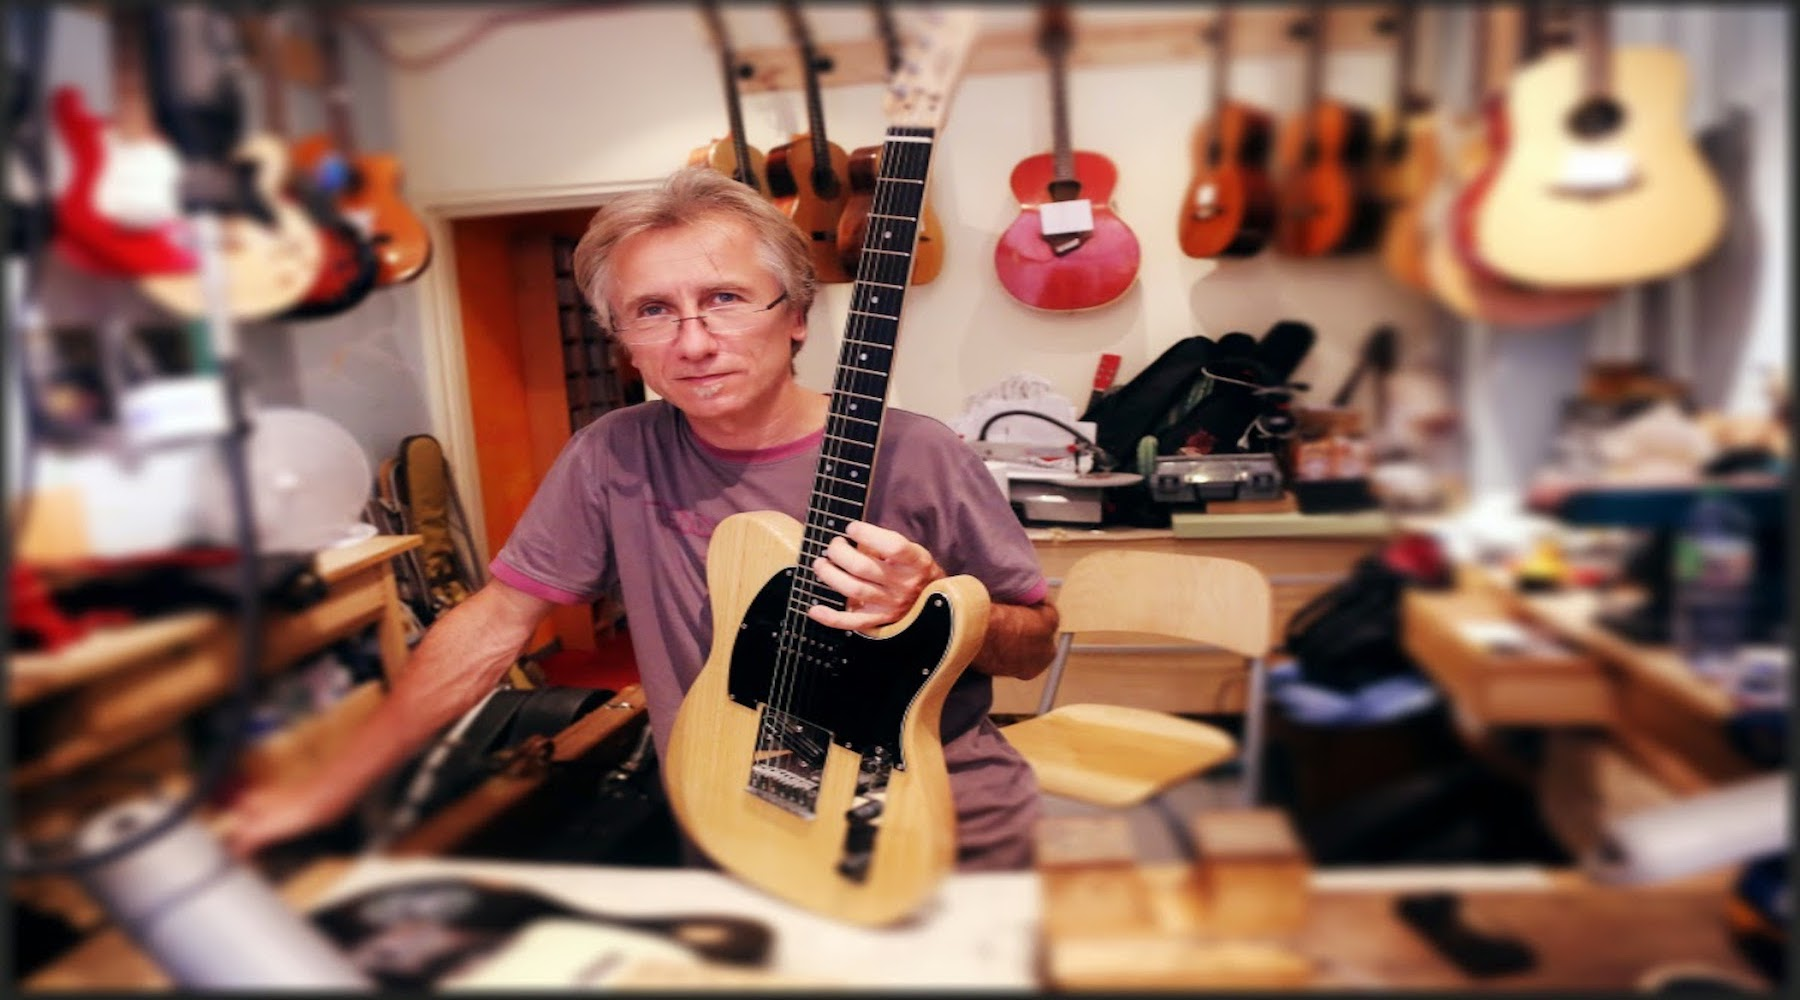 Luthier guitare Toulouse